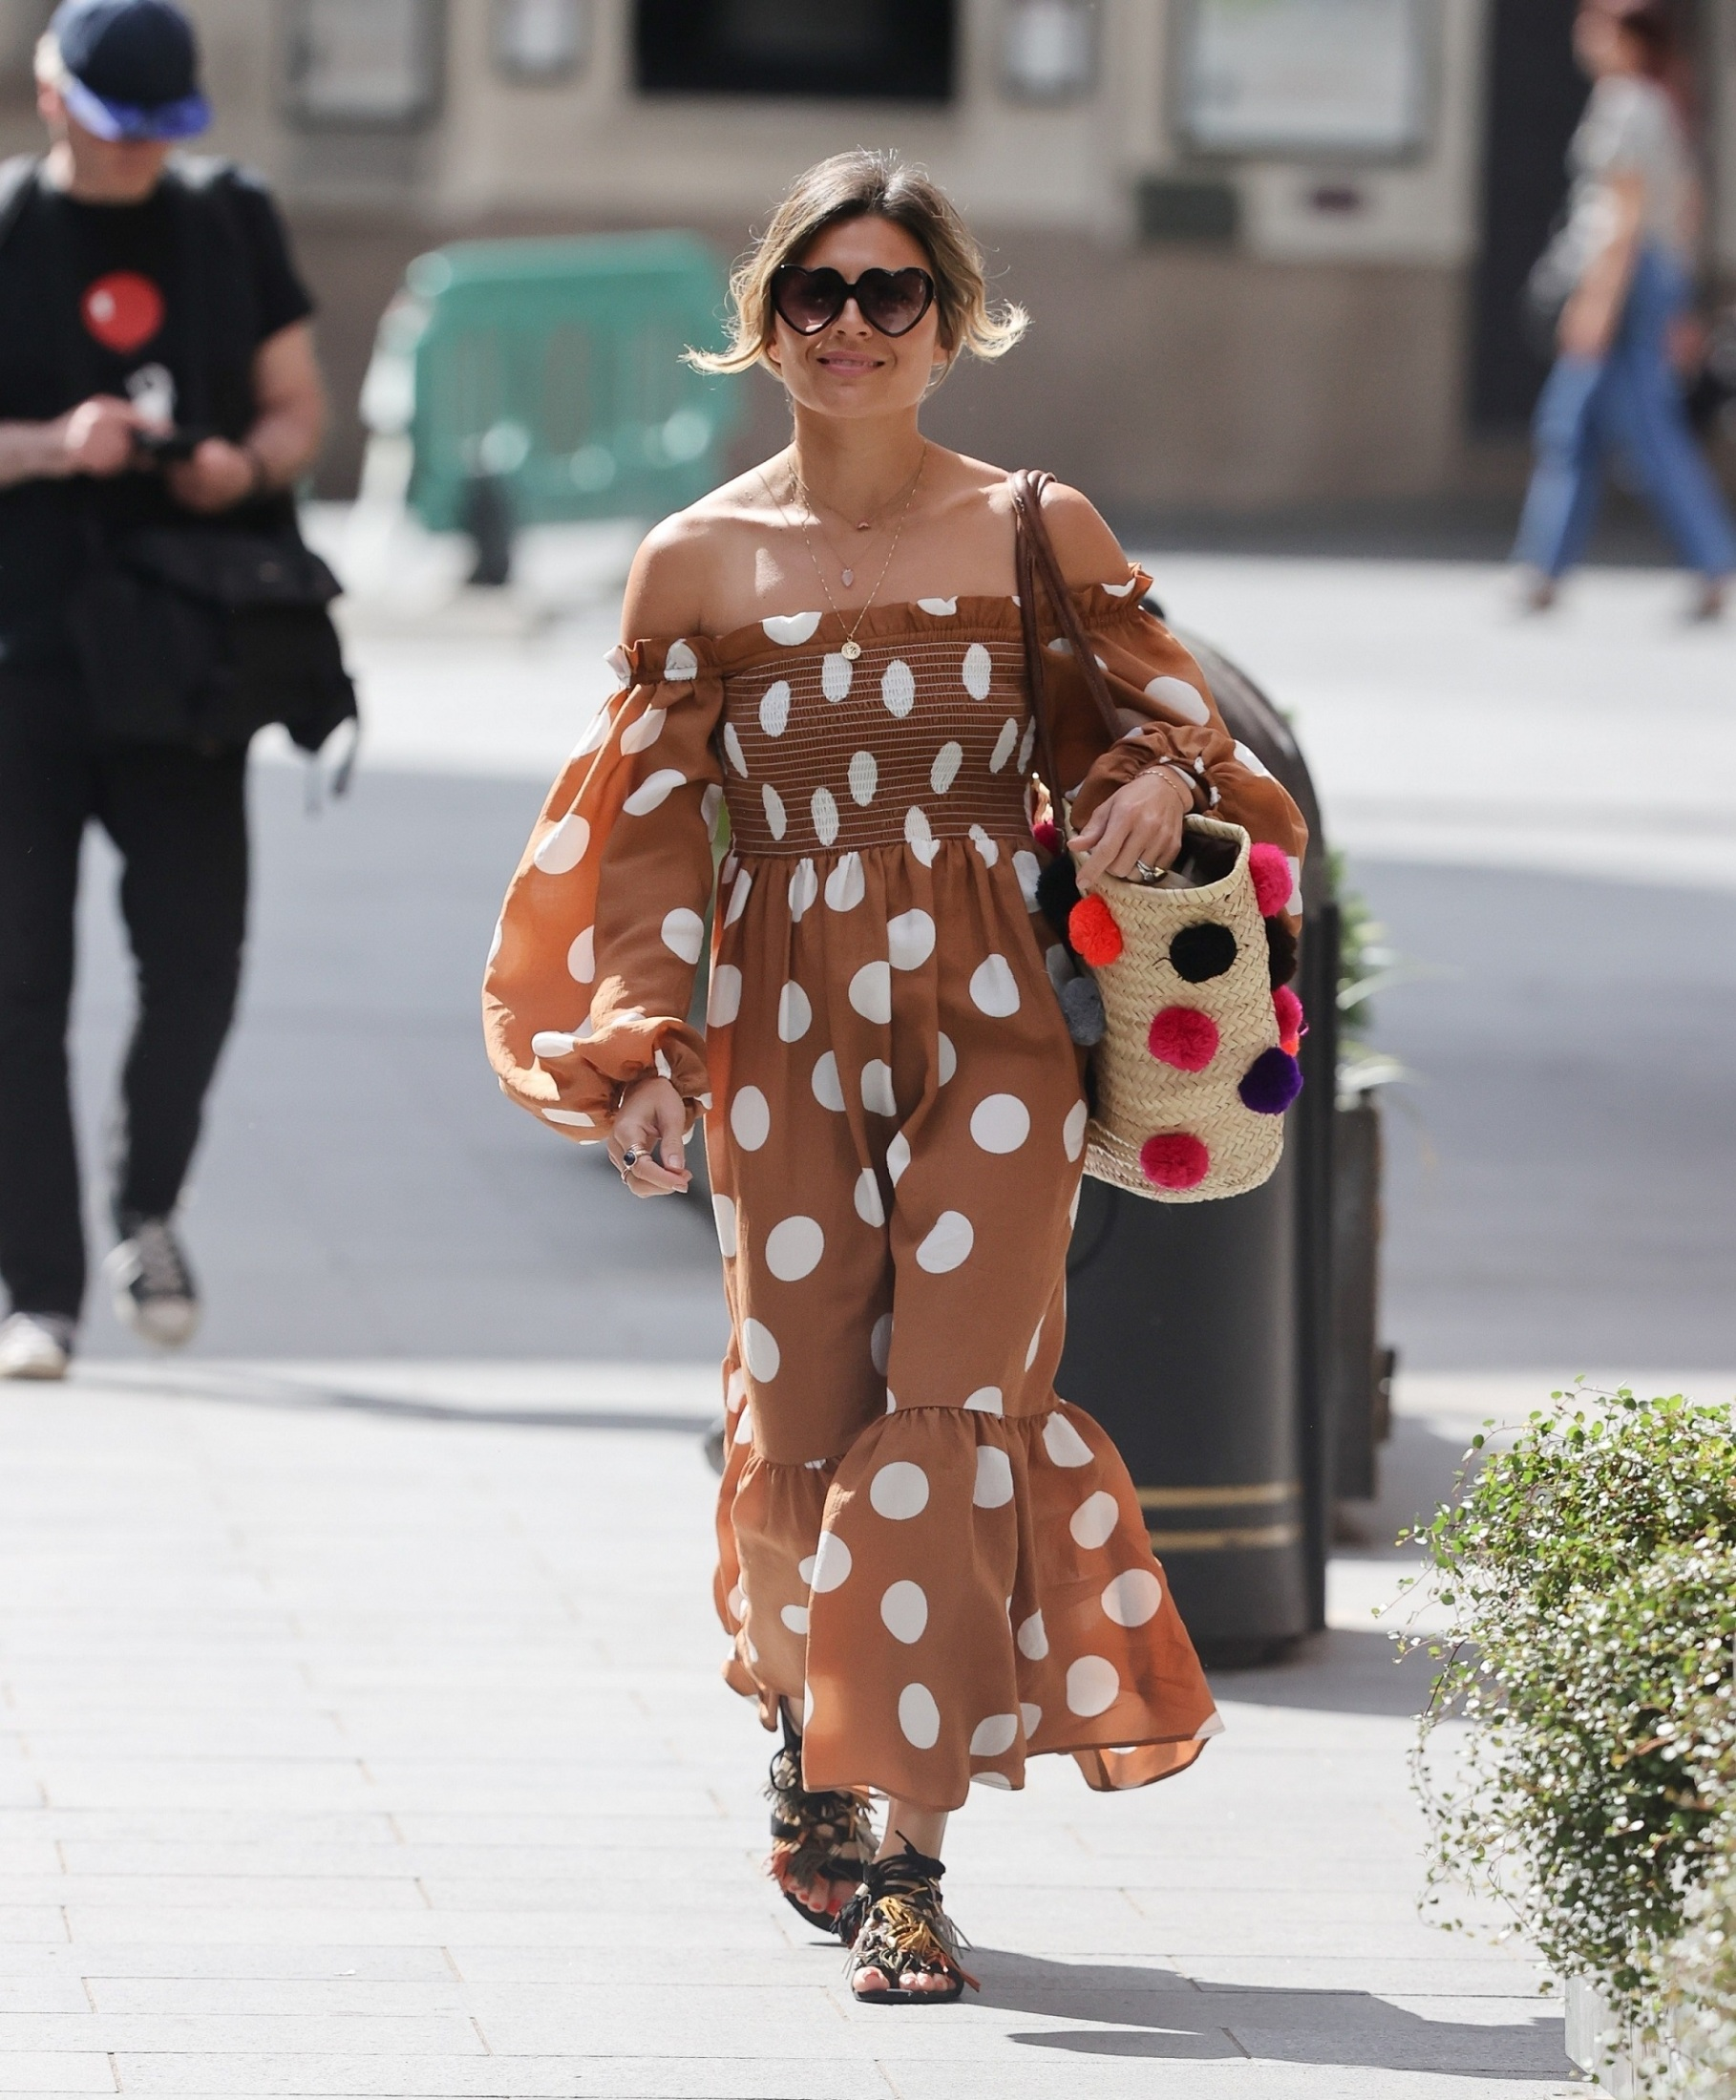 London, UNITED KINGDOM  - Zoe Hardman looks fabulous polka-dot and sandals exits Heart radio  *UK Clients - Pictures Containing Children Please Pixelate Face Prior To Publication*,Image: 531195595, License: Rights-managed, Restrictions: , Model Release: no, Credit line: BACKGRID / Backgrid UK / Profimedia